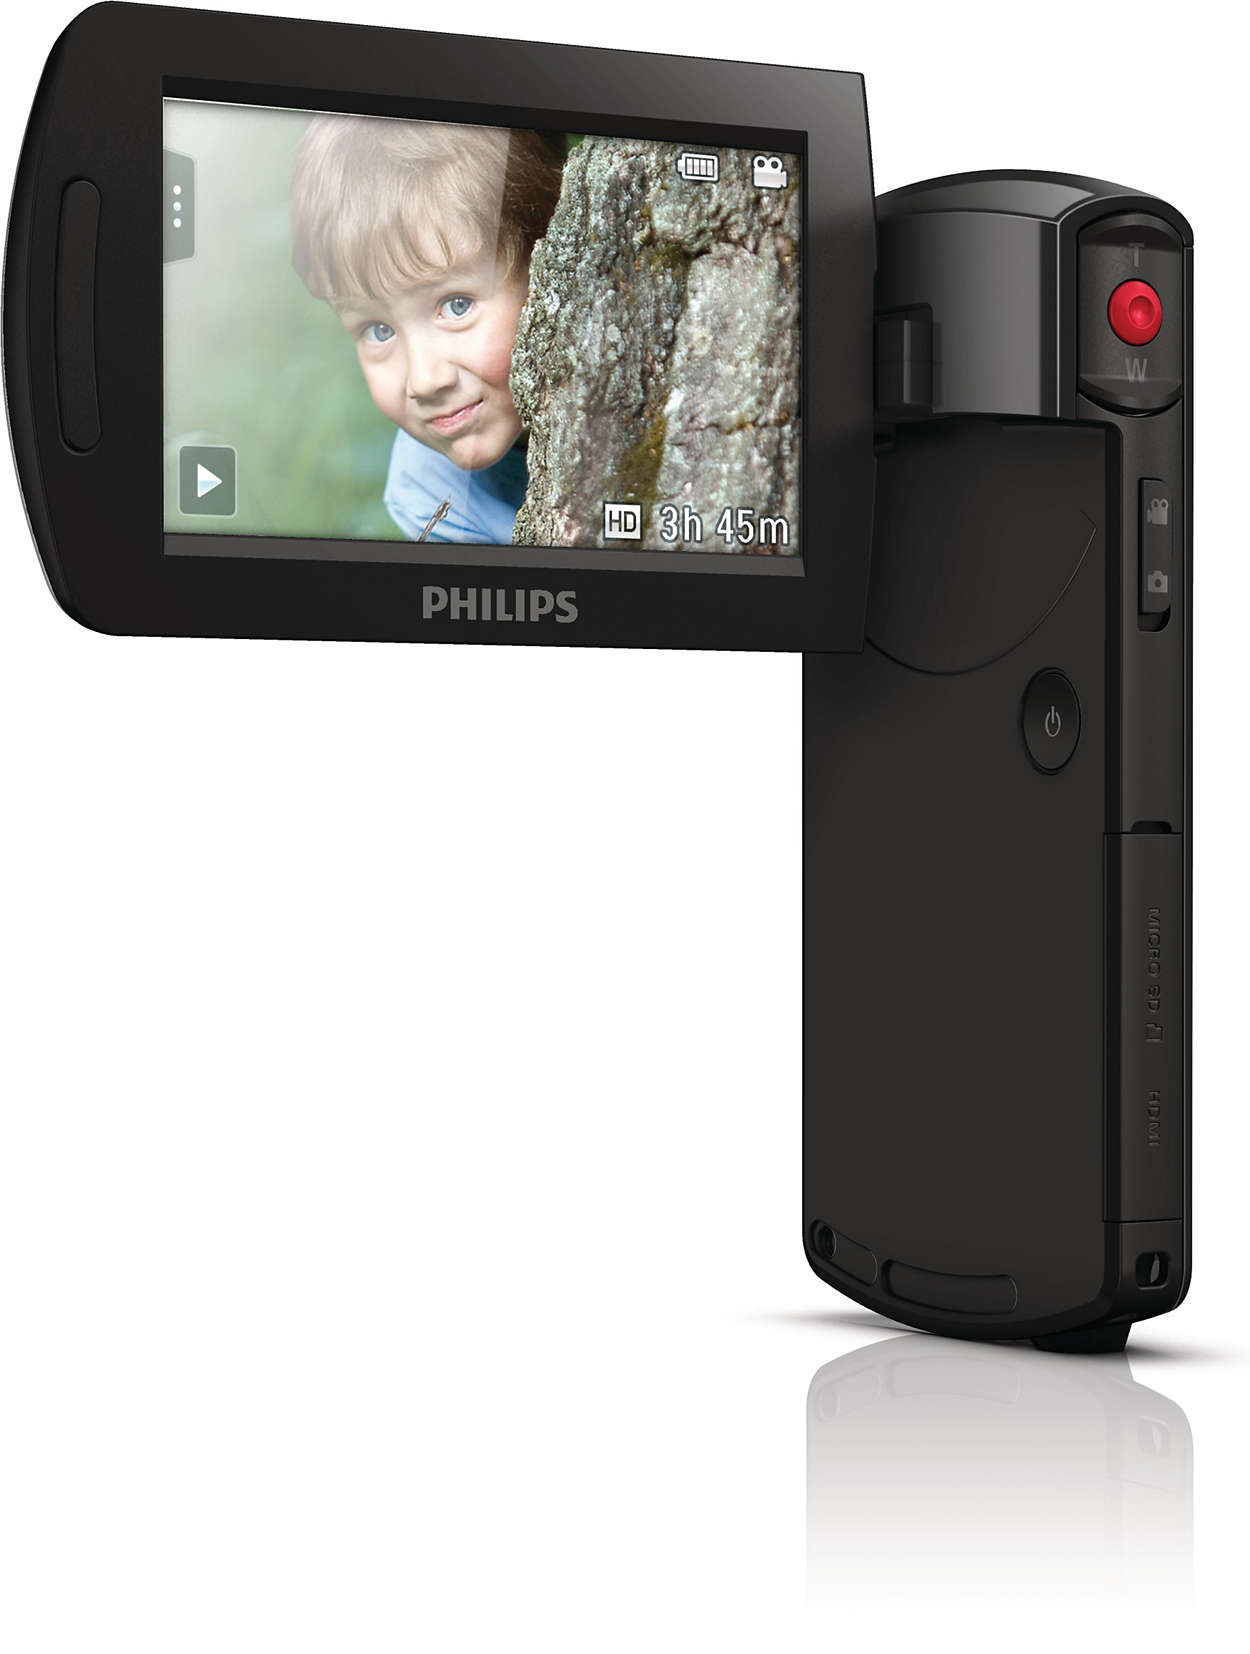 Capturing & sharing great moments - made easy